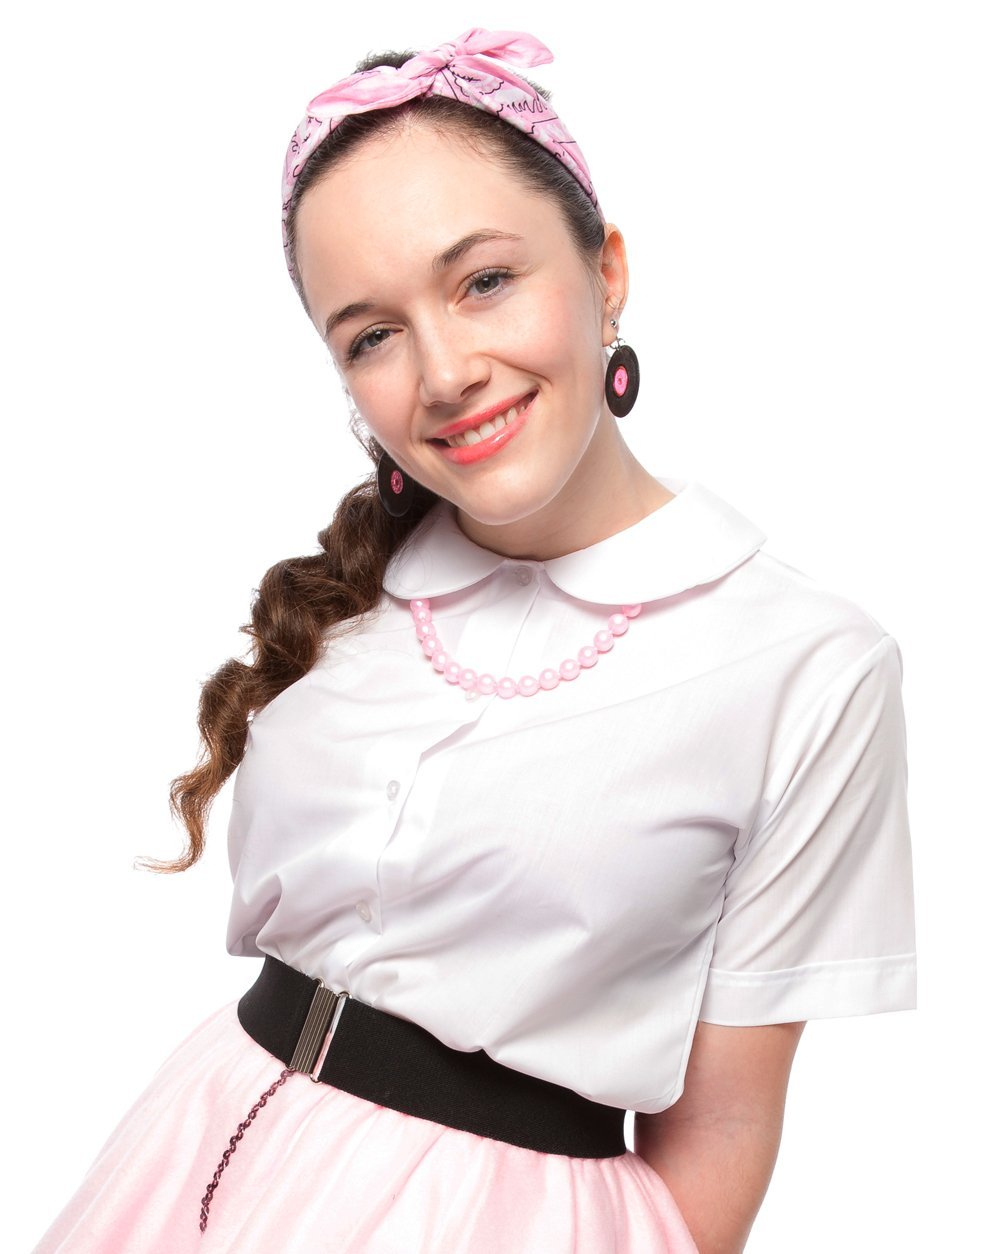 Peter Pan Blouse - Adult S (White) by Hey Viv ! (Image #1)